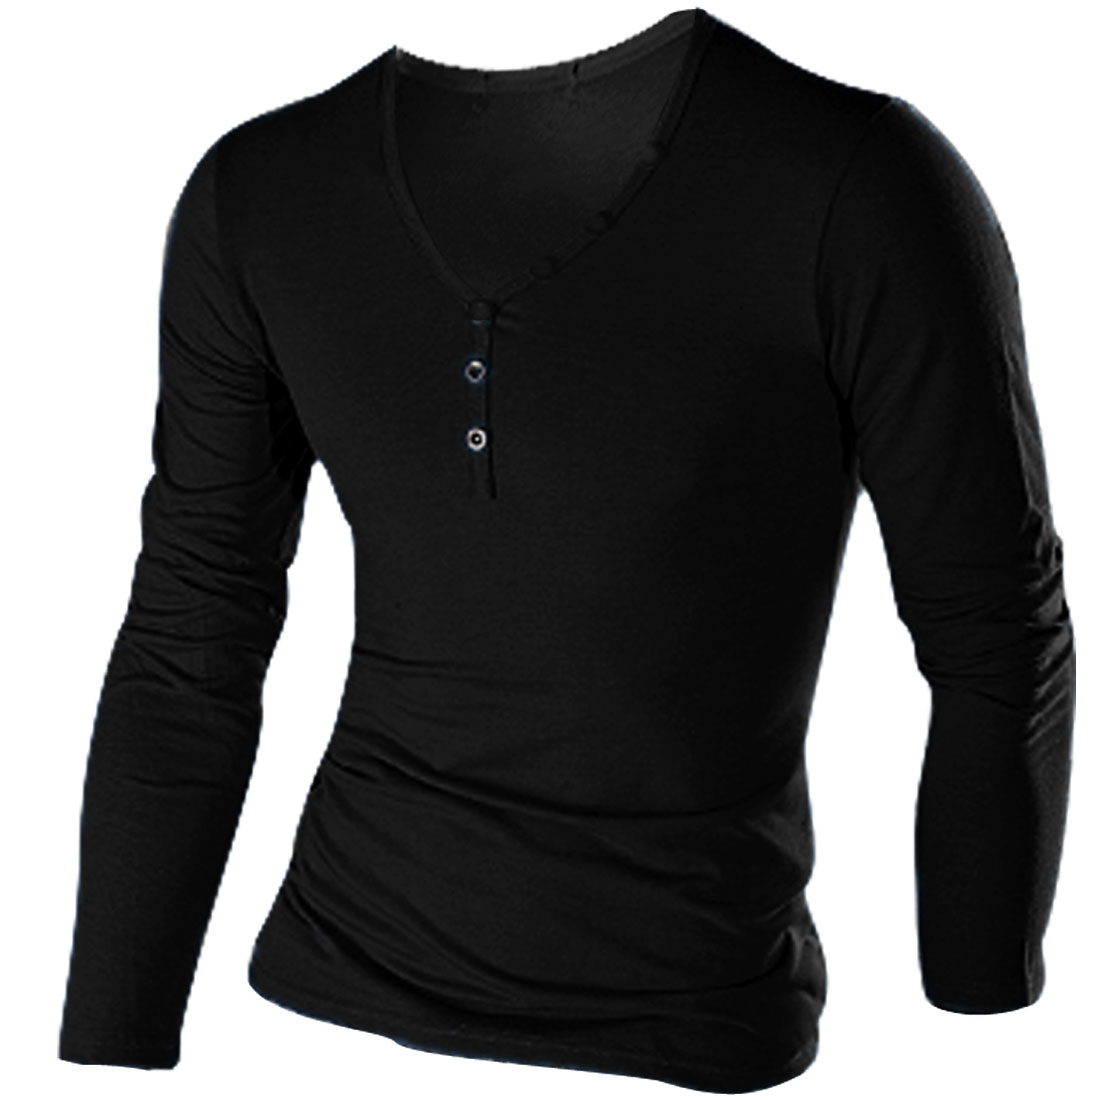 Black 1/2 Button Down Decor Long Sleeved Stretchy Man T-shirt M